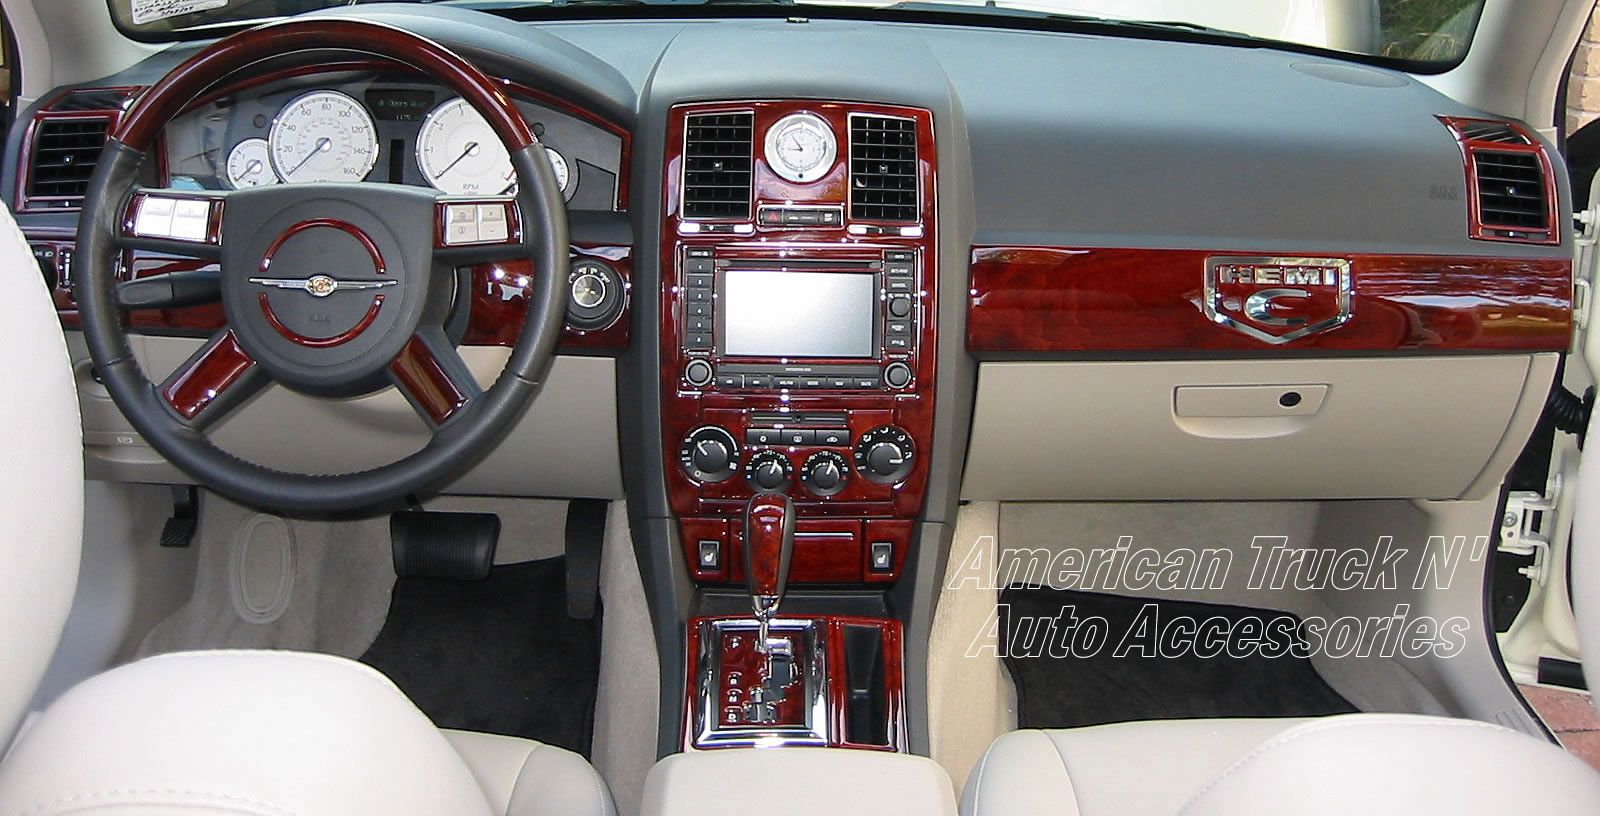 Custom chrysler 300c interior 300 dreams chrysler - Chrysler 300 interior accessories ...